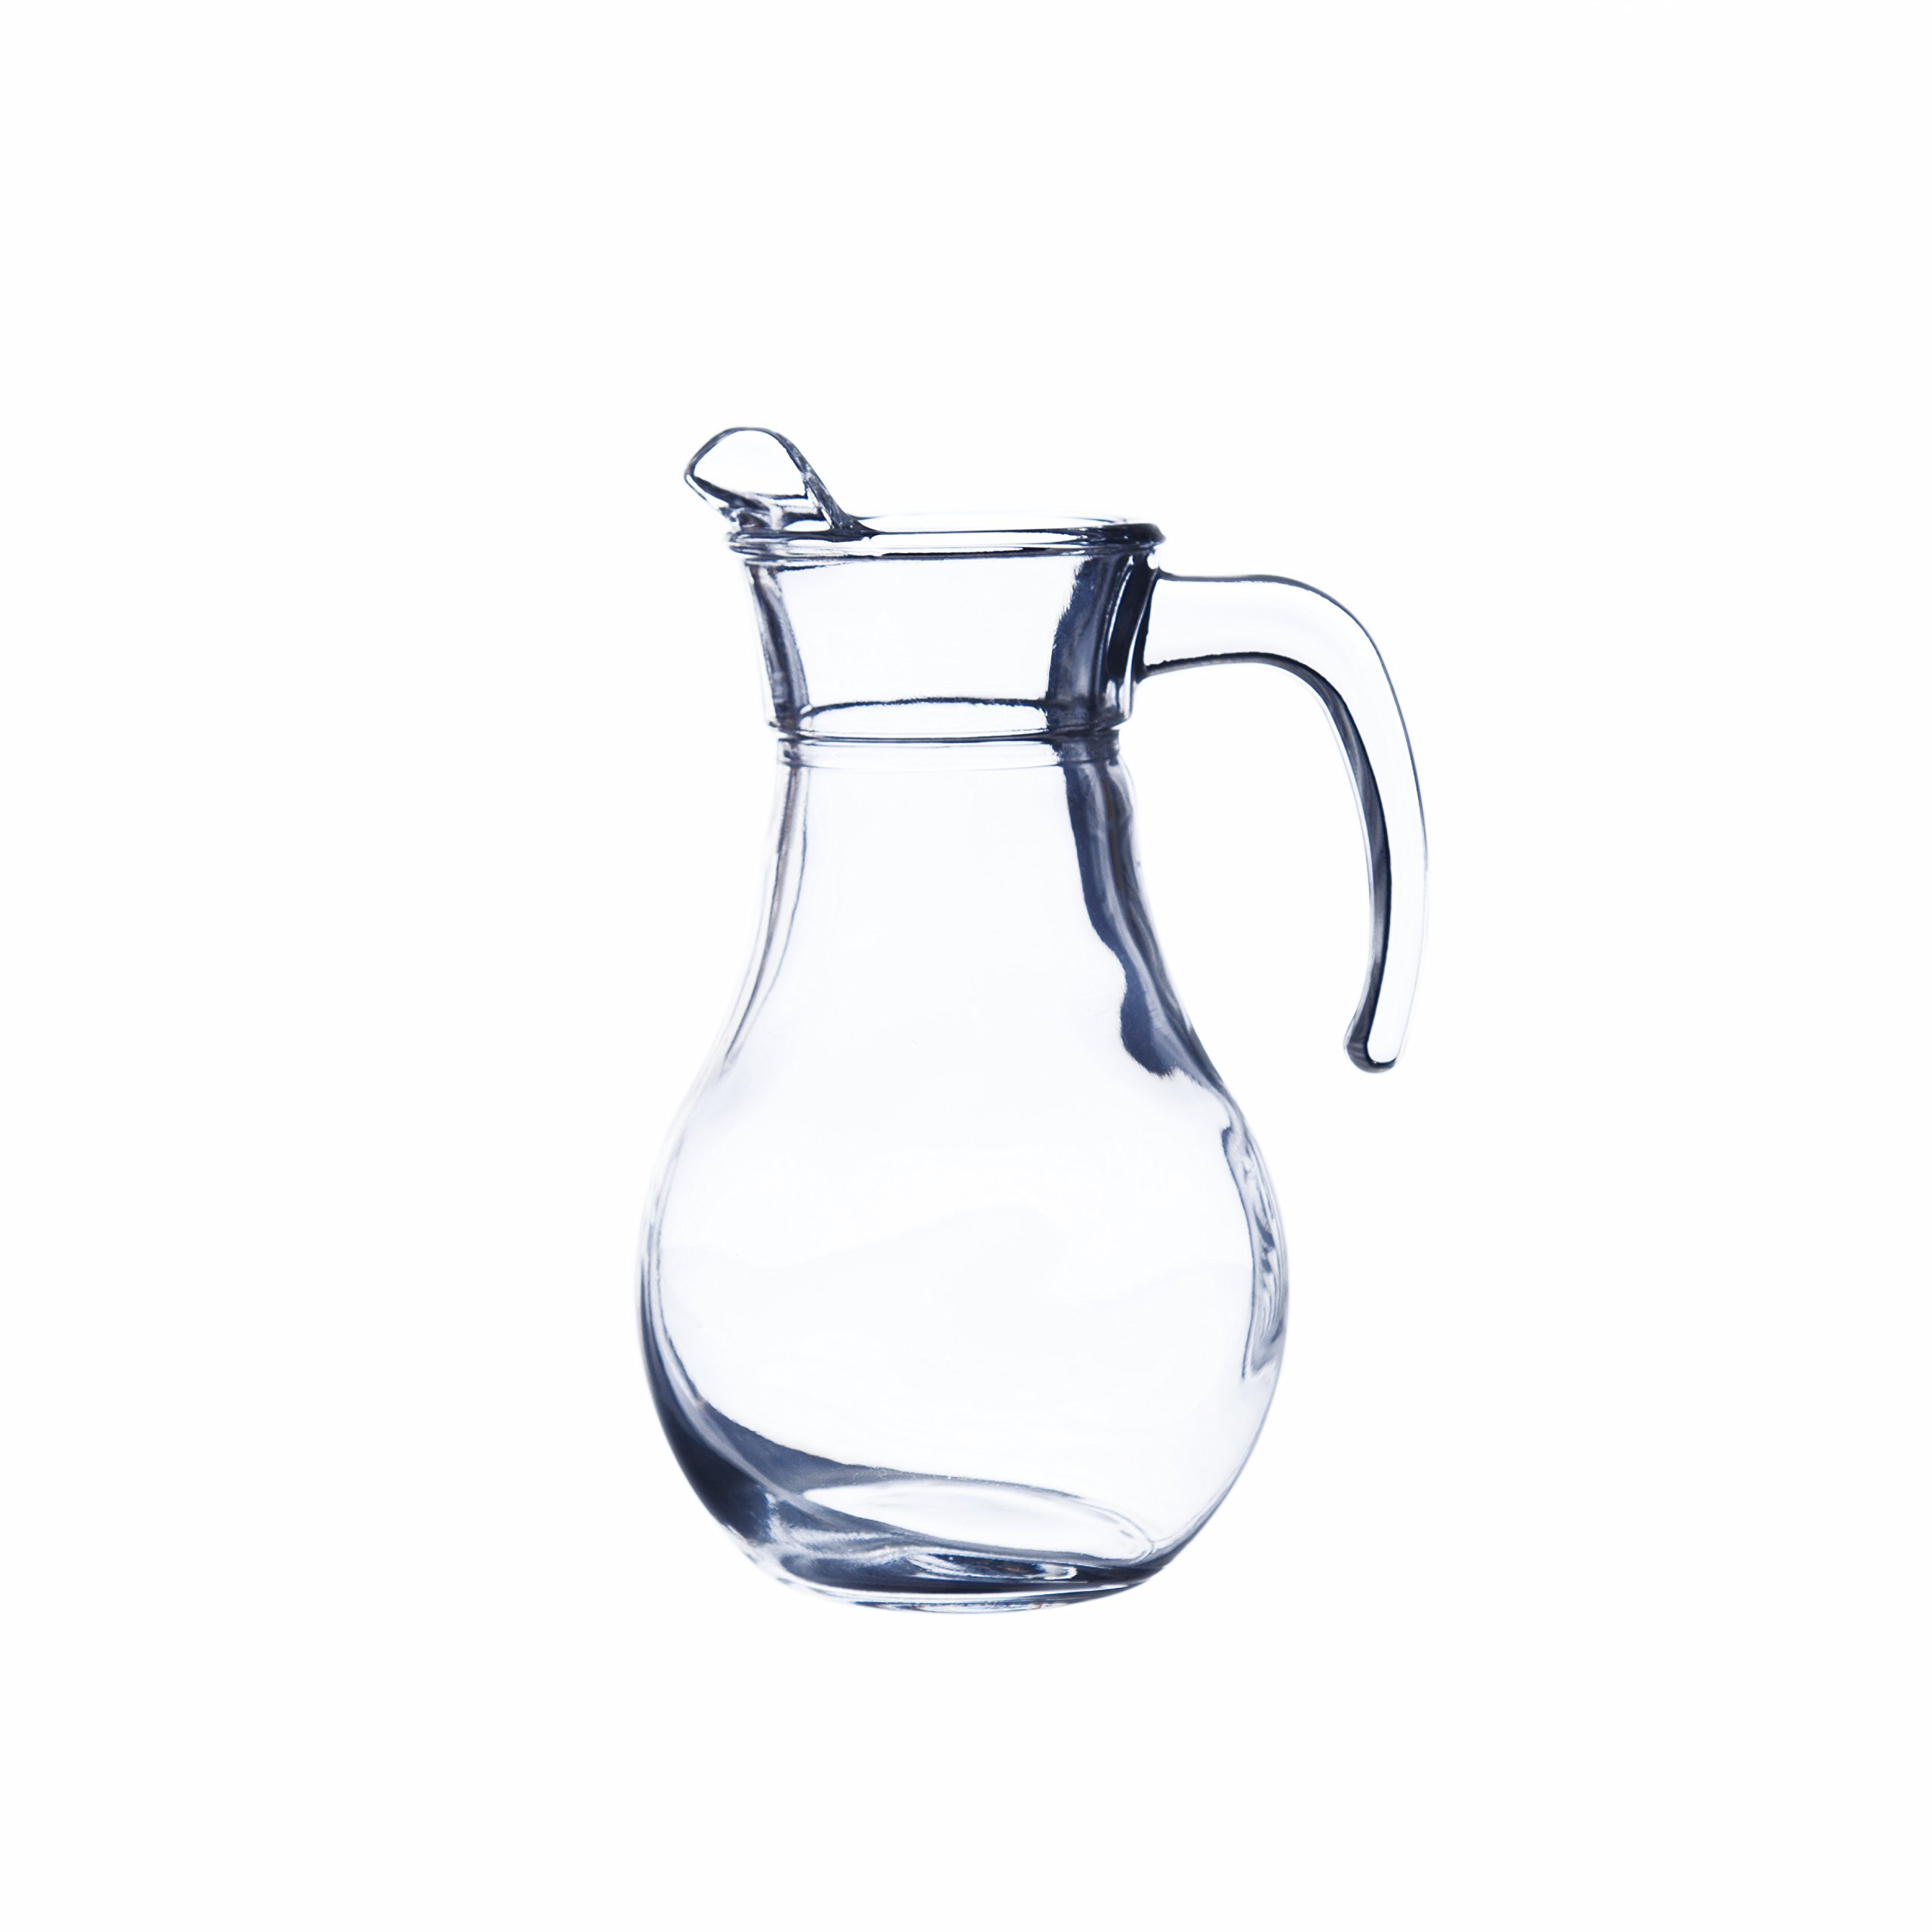 BISTRO Glass Pitcher with Lid, Hot/Cold Water Jug, Juice and Iced Tea Beverage Carafe, 1.05 Quarts (1000 ml), Restaurant&Hotel Quality